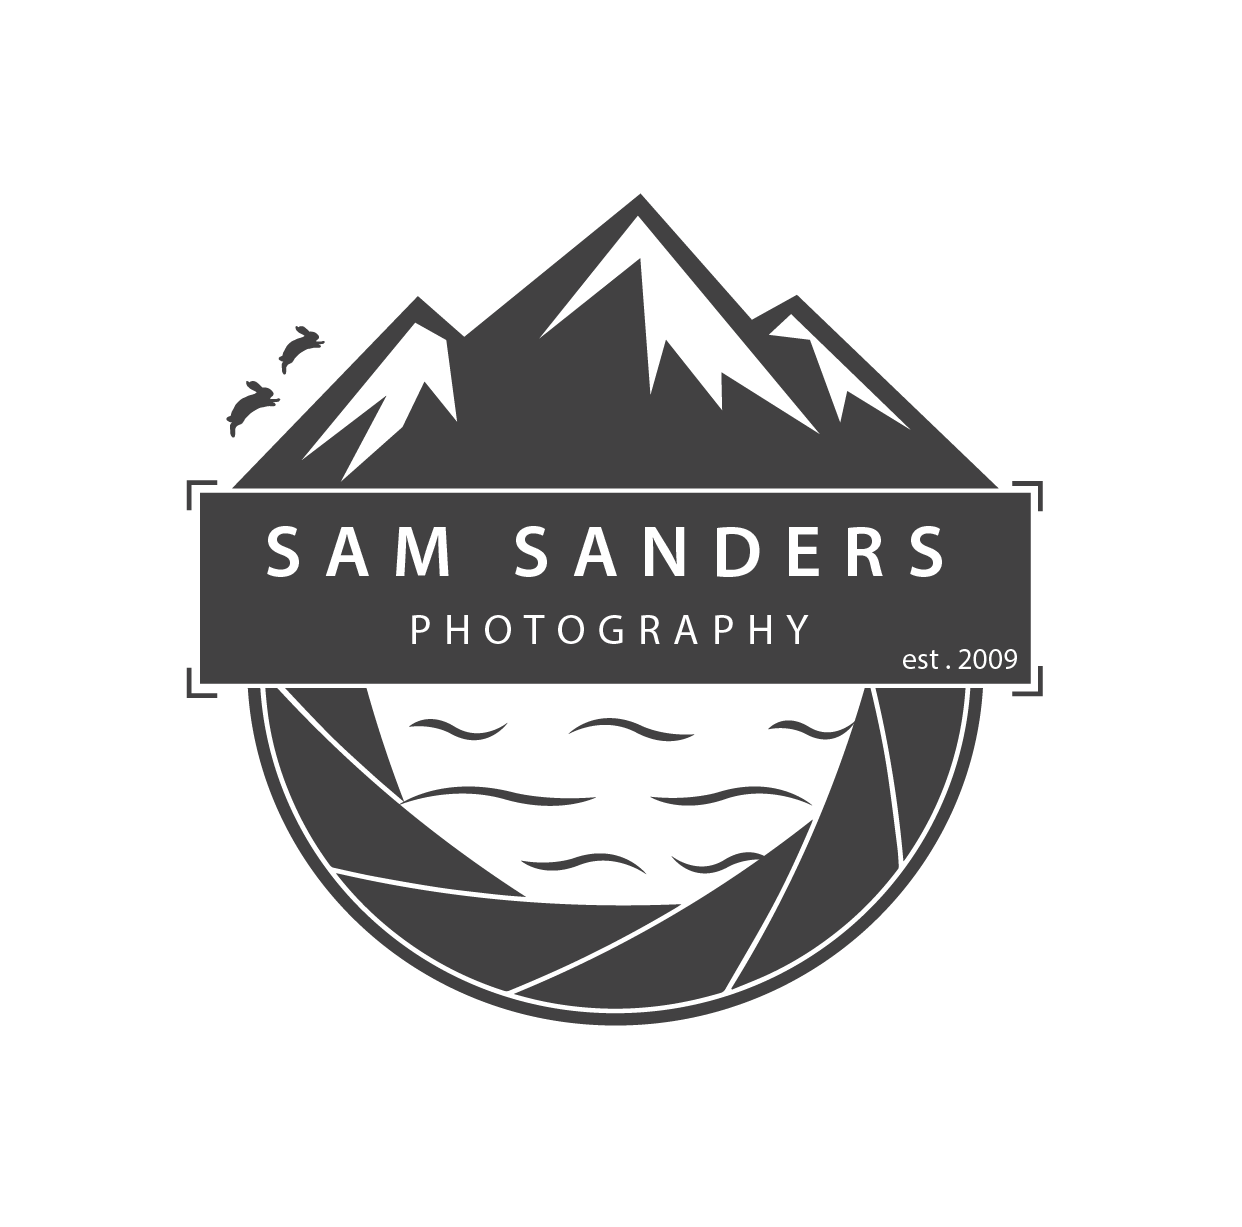 samsandersphotography.co.uk